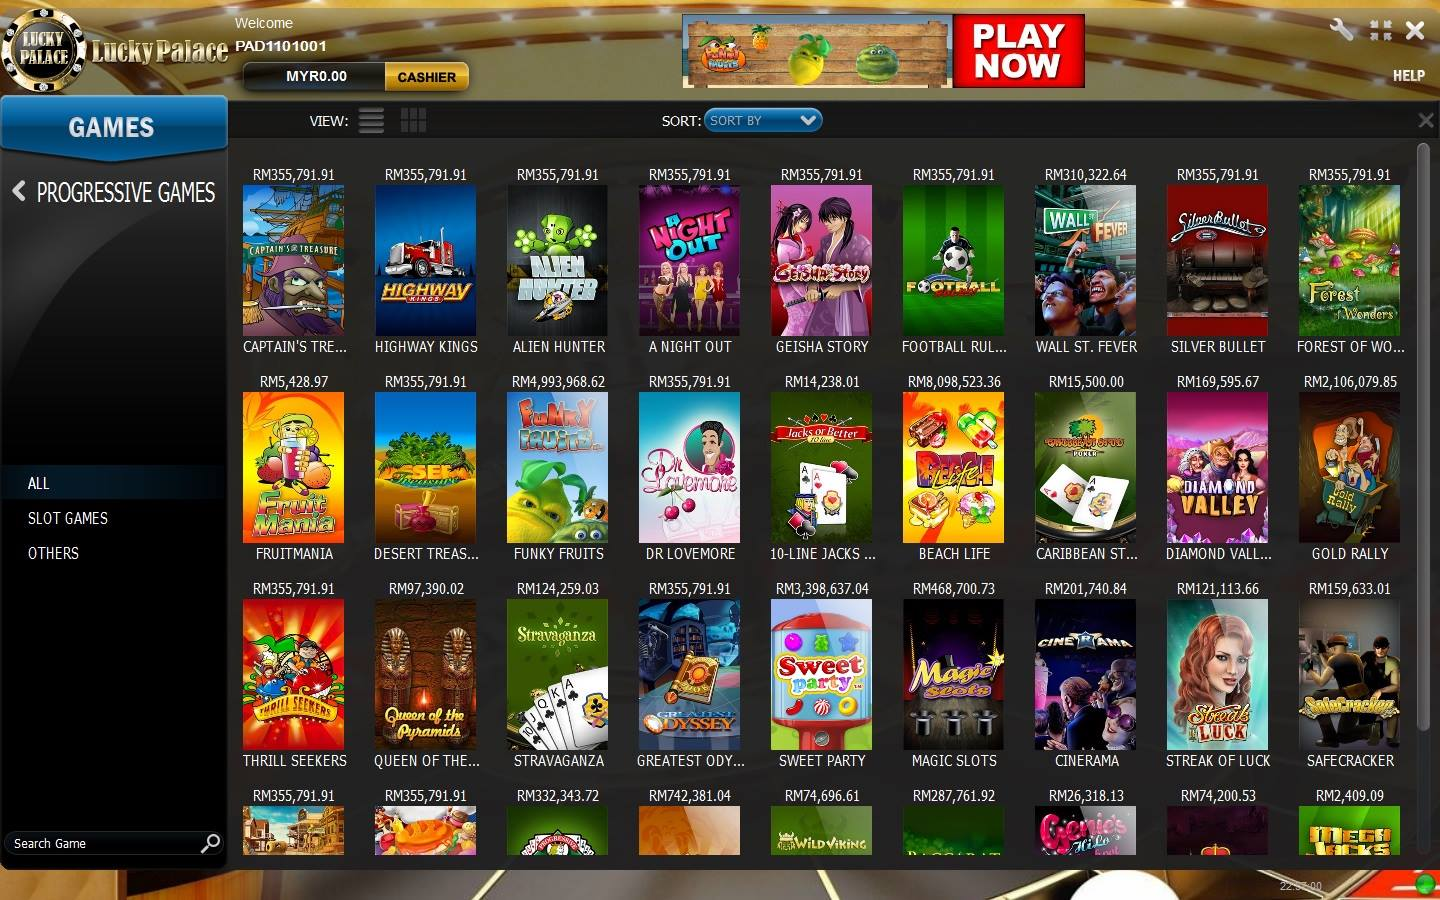 lpe88 casino lpe88 android apk lpe88 download